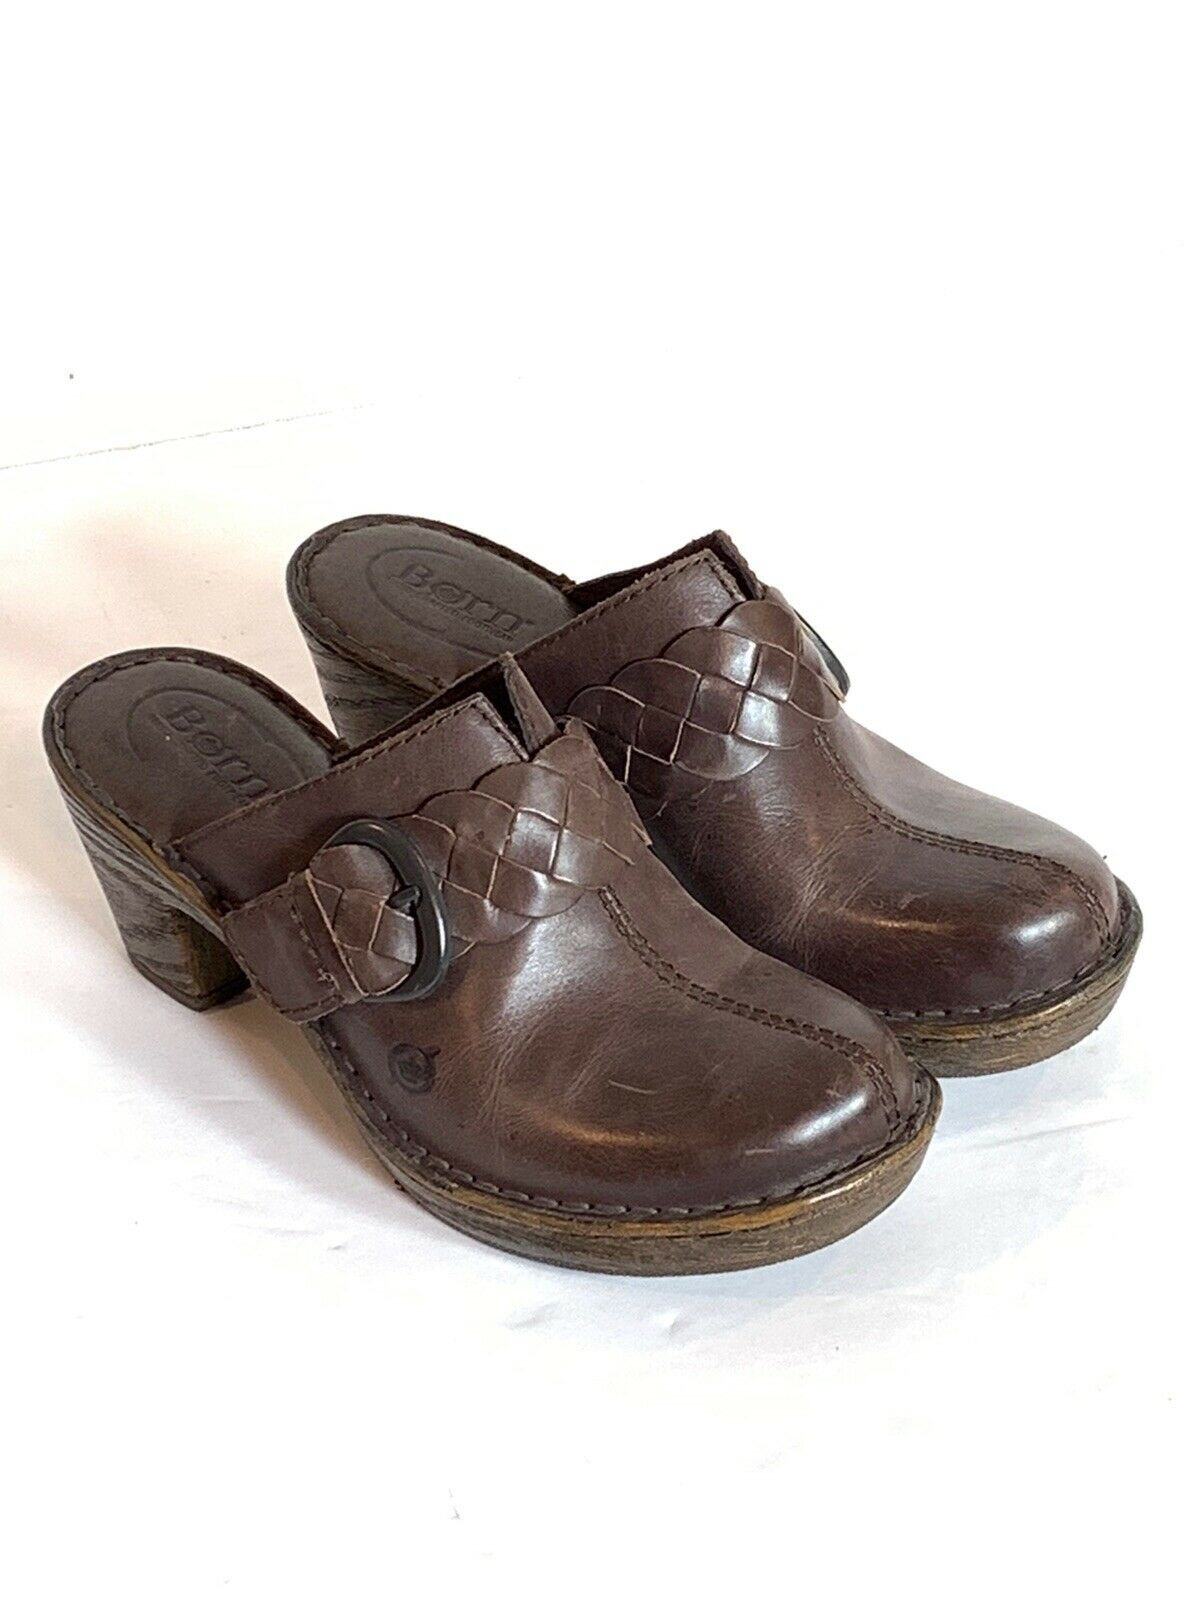 Born Brown Leather Emme Mules Women's Size 6